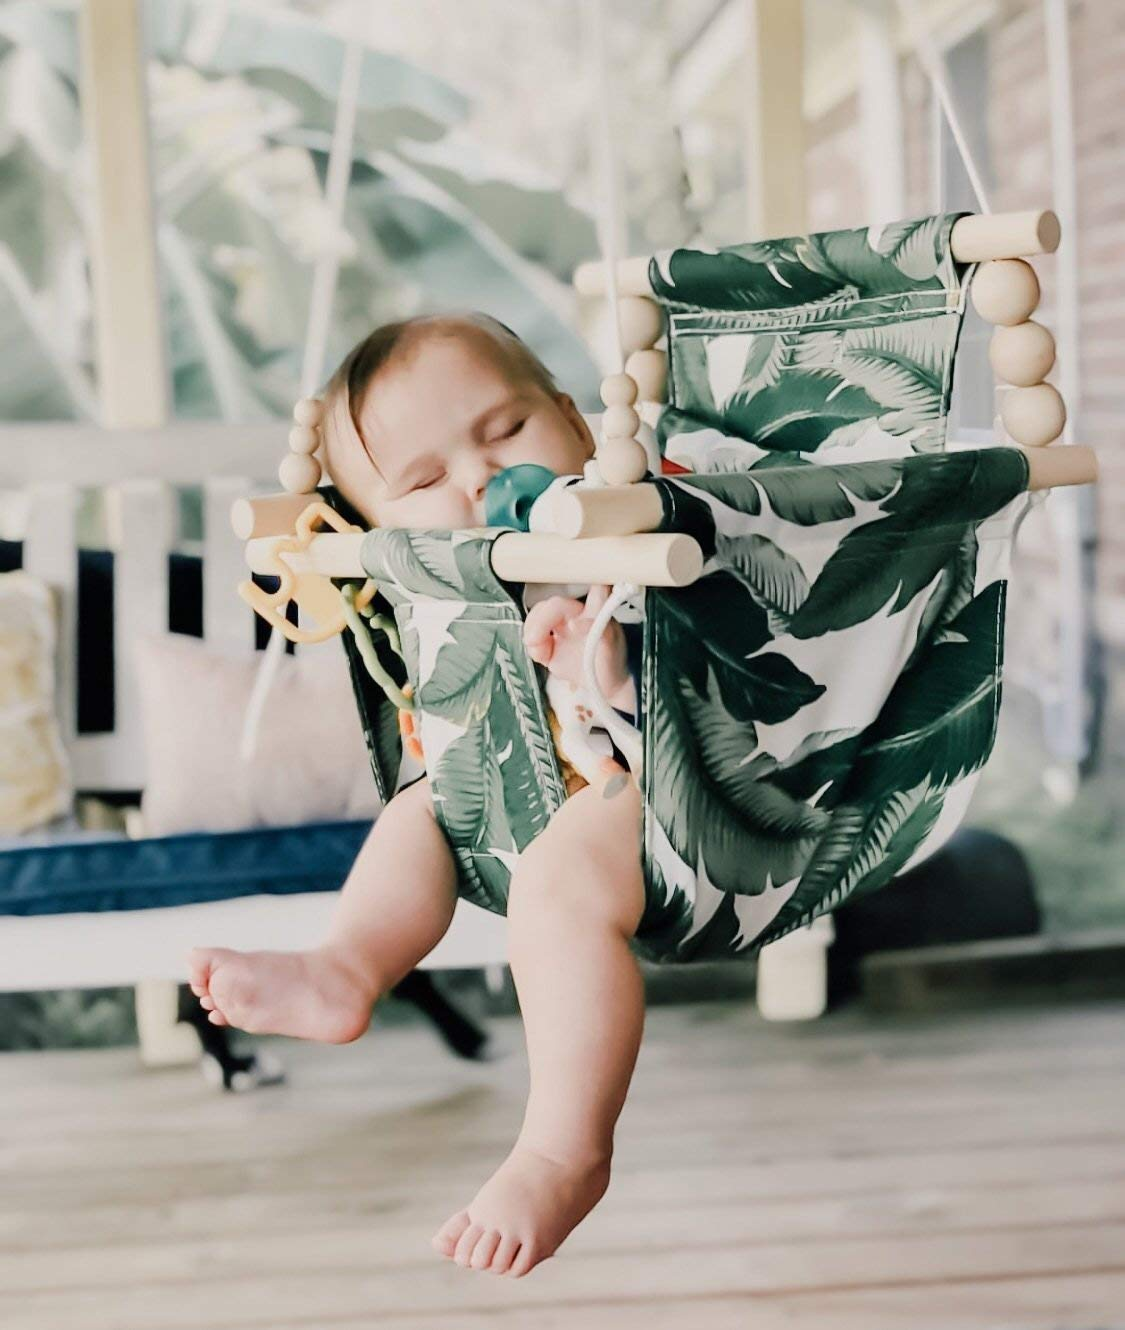 B07QCWCCP1 OUTDOOR tropical palm leaves swing, baby swing, fabric baby swing, porch swing 61lmWDSqgAL._SL1330_